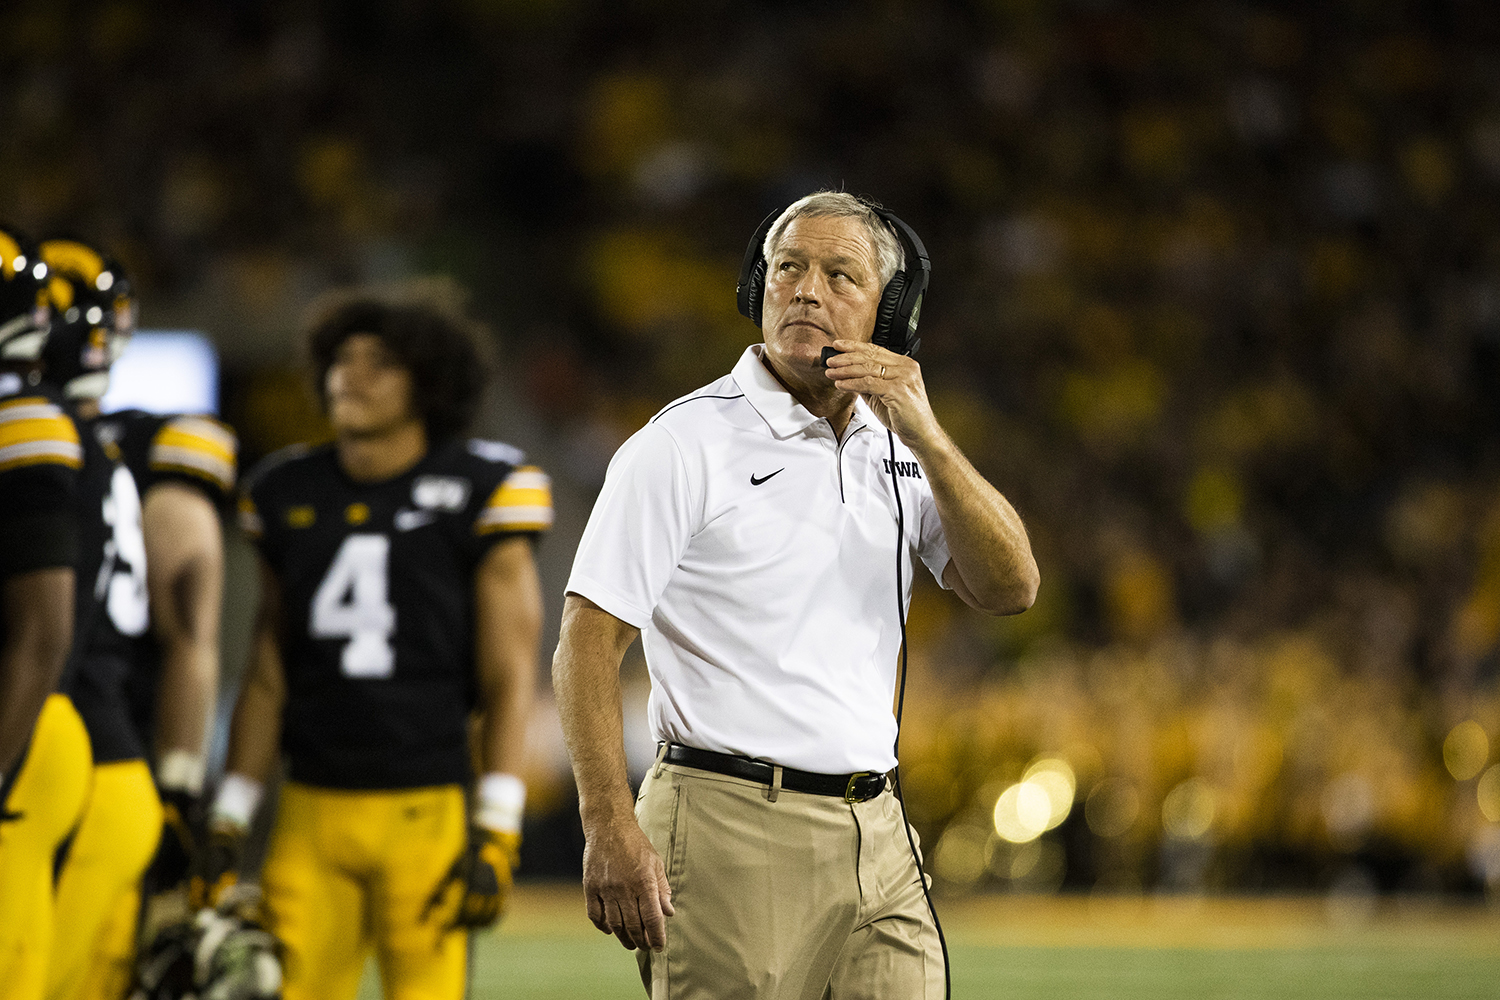 Iowa head coach Kirk Ferentz looks to the stands during the football game against Miami (Ohio) at Kinnick Stadium on Saturday, August 31, 2019.